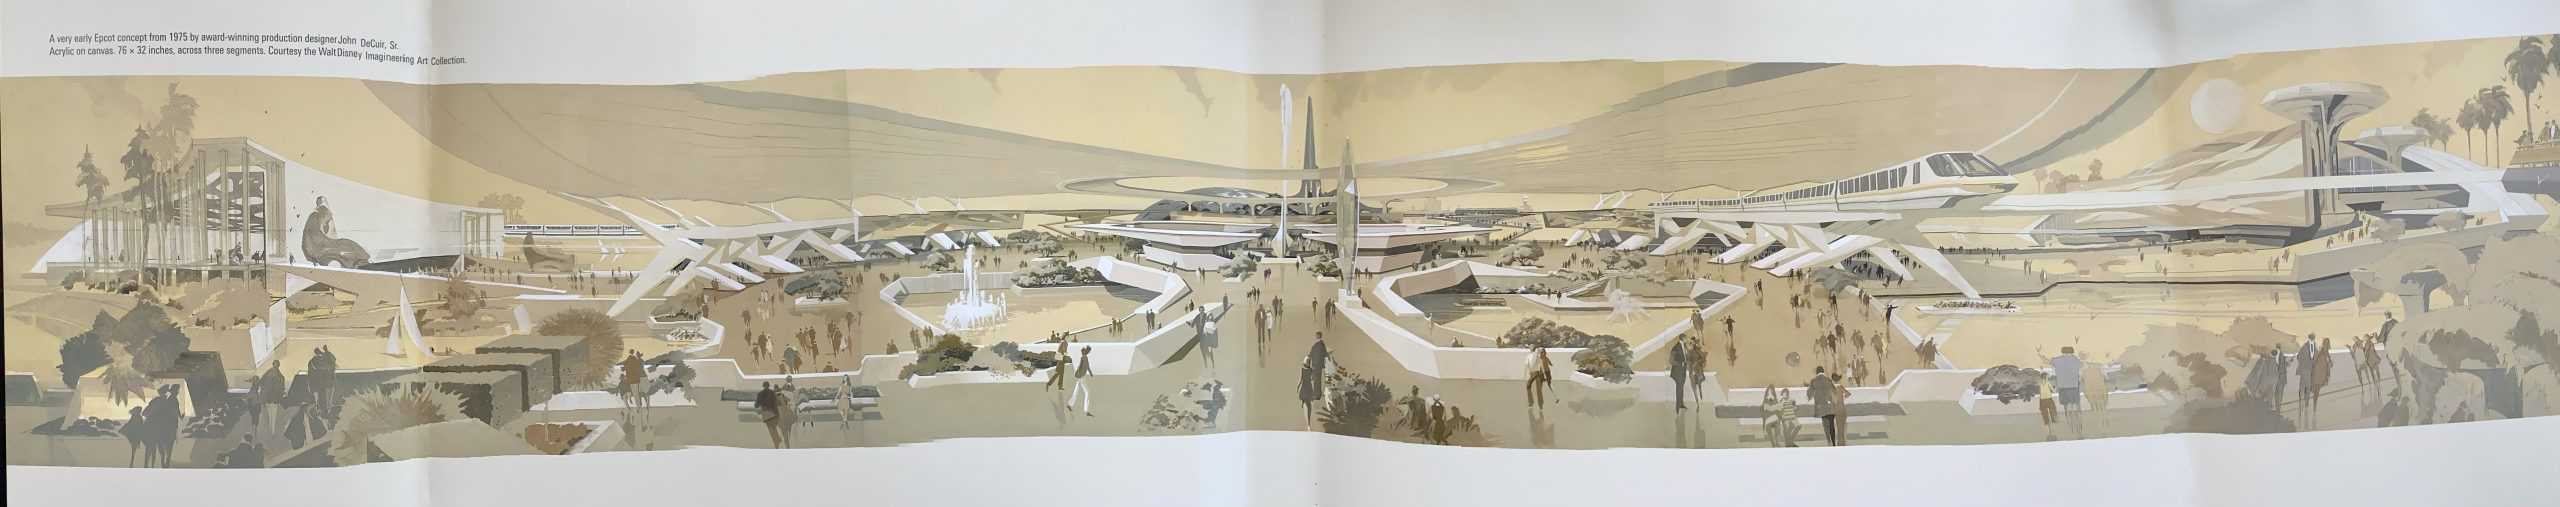 Disney Monorail concept art panorama